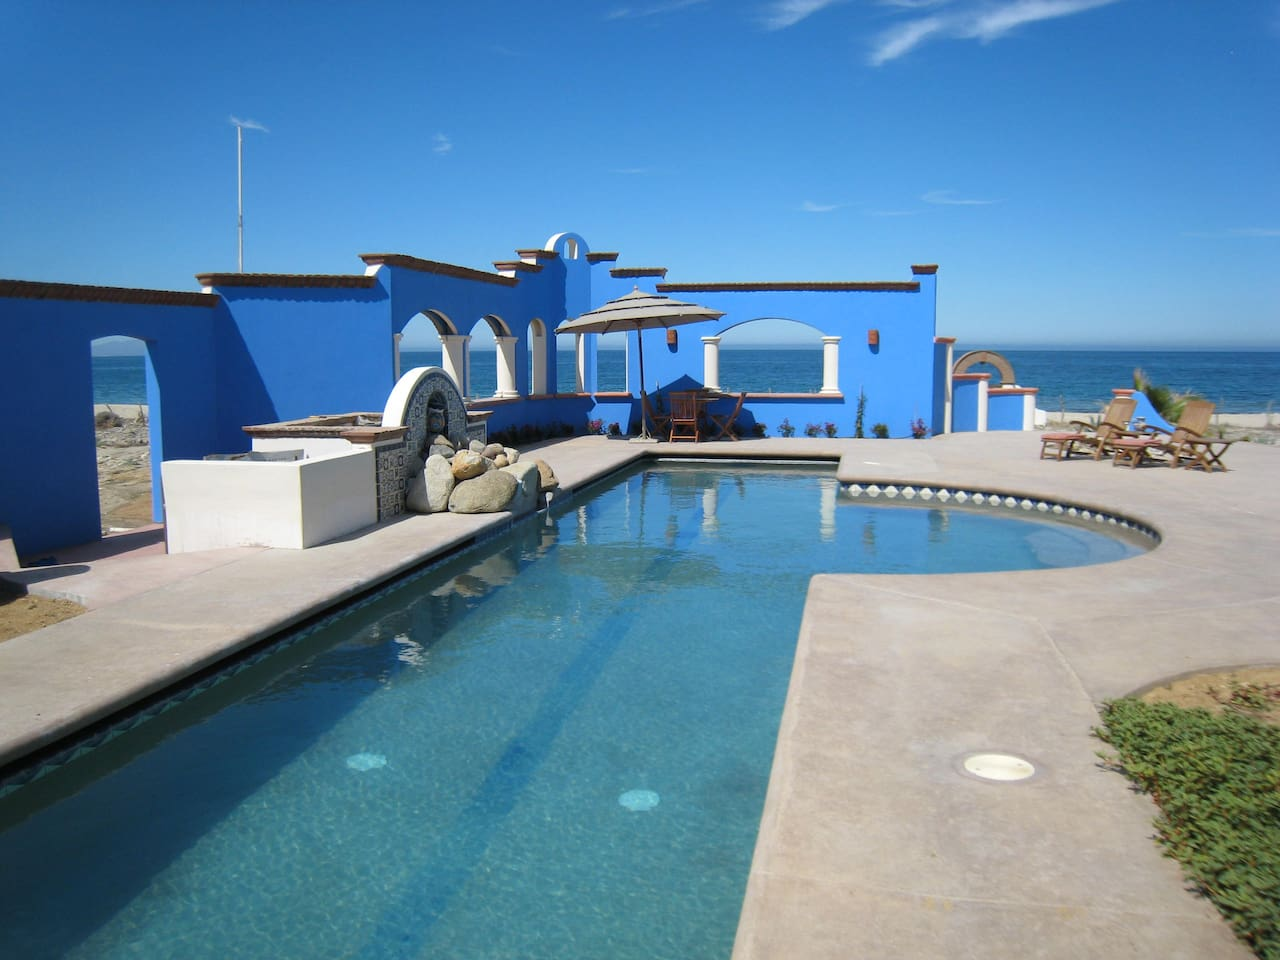 75 foot lap pool, with View of the Sea of Cortez